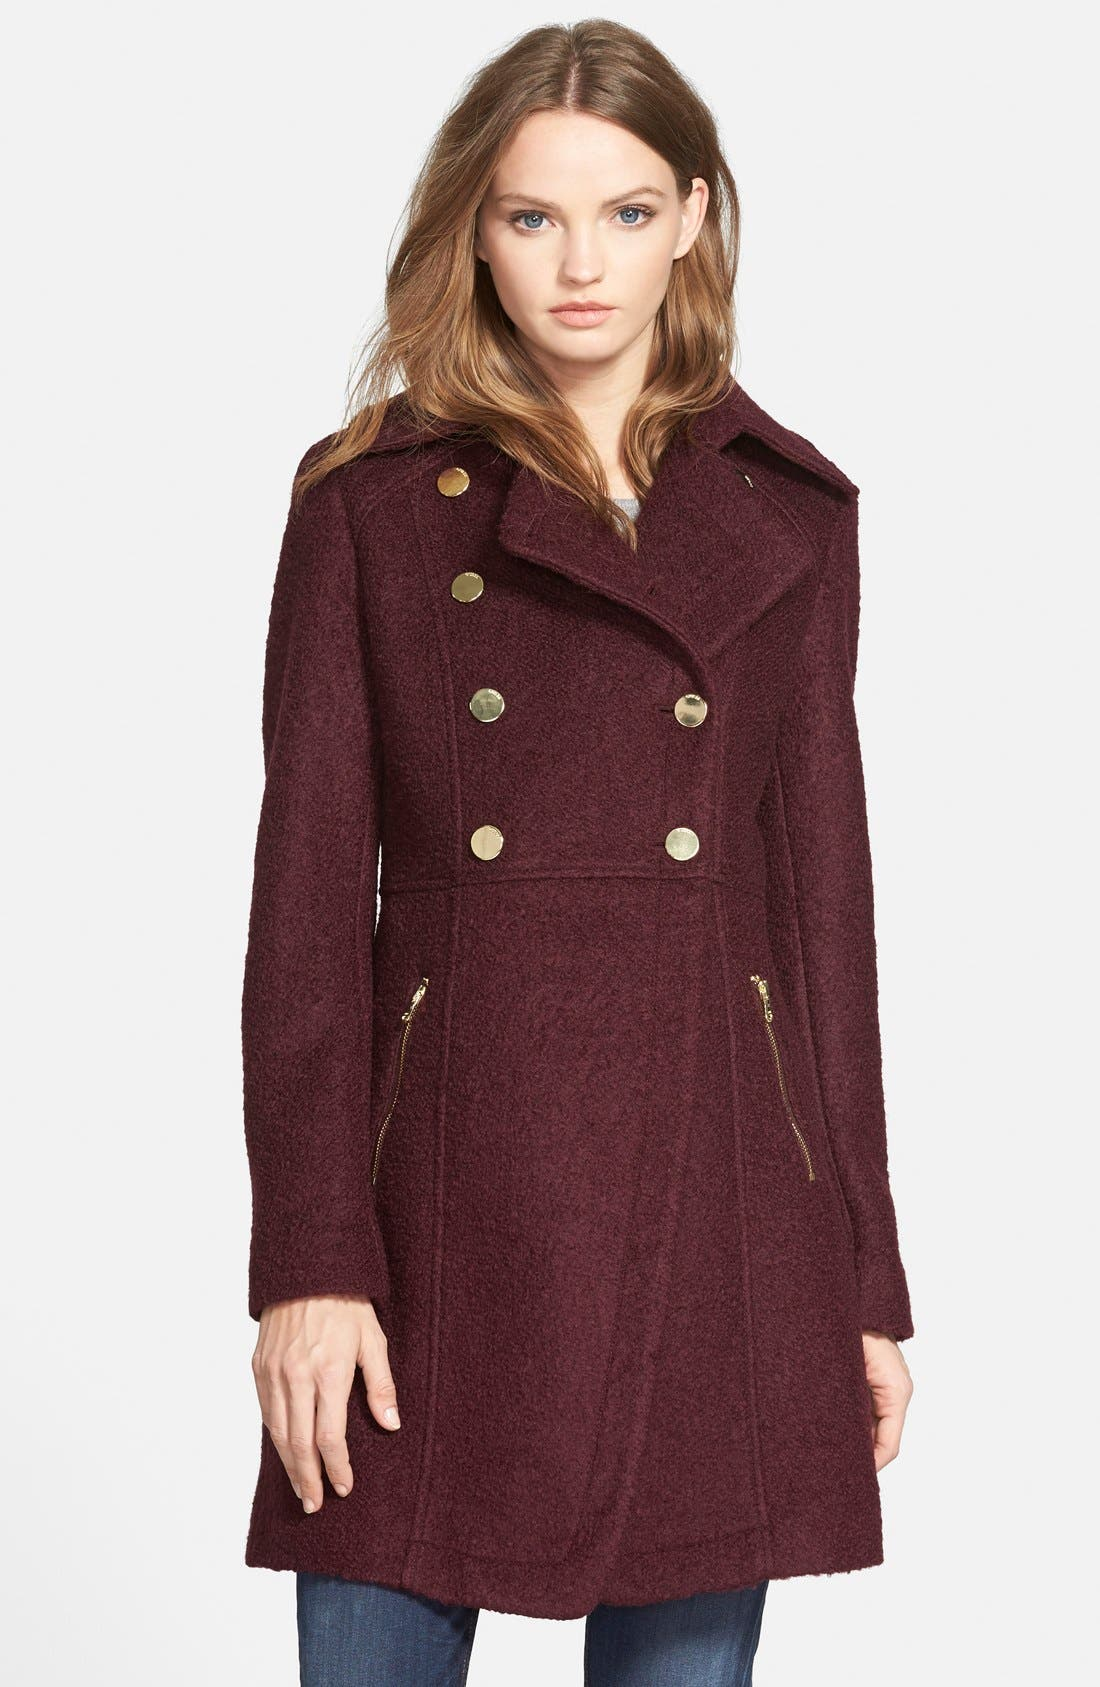 GUESS Double Breasted Bouclé Cutaway Coat (Regular & Petite)